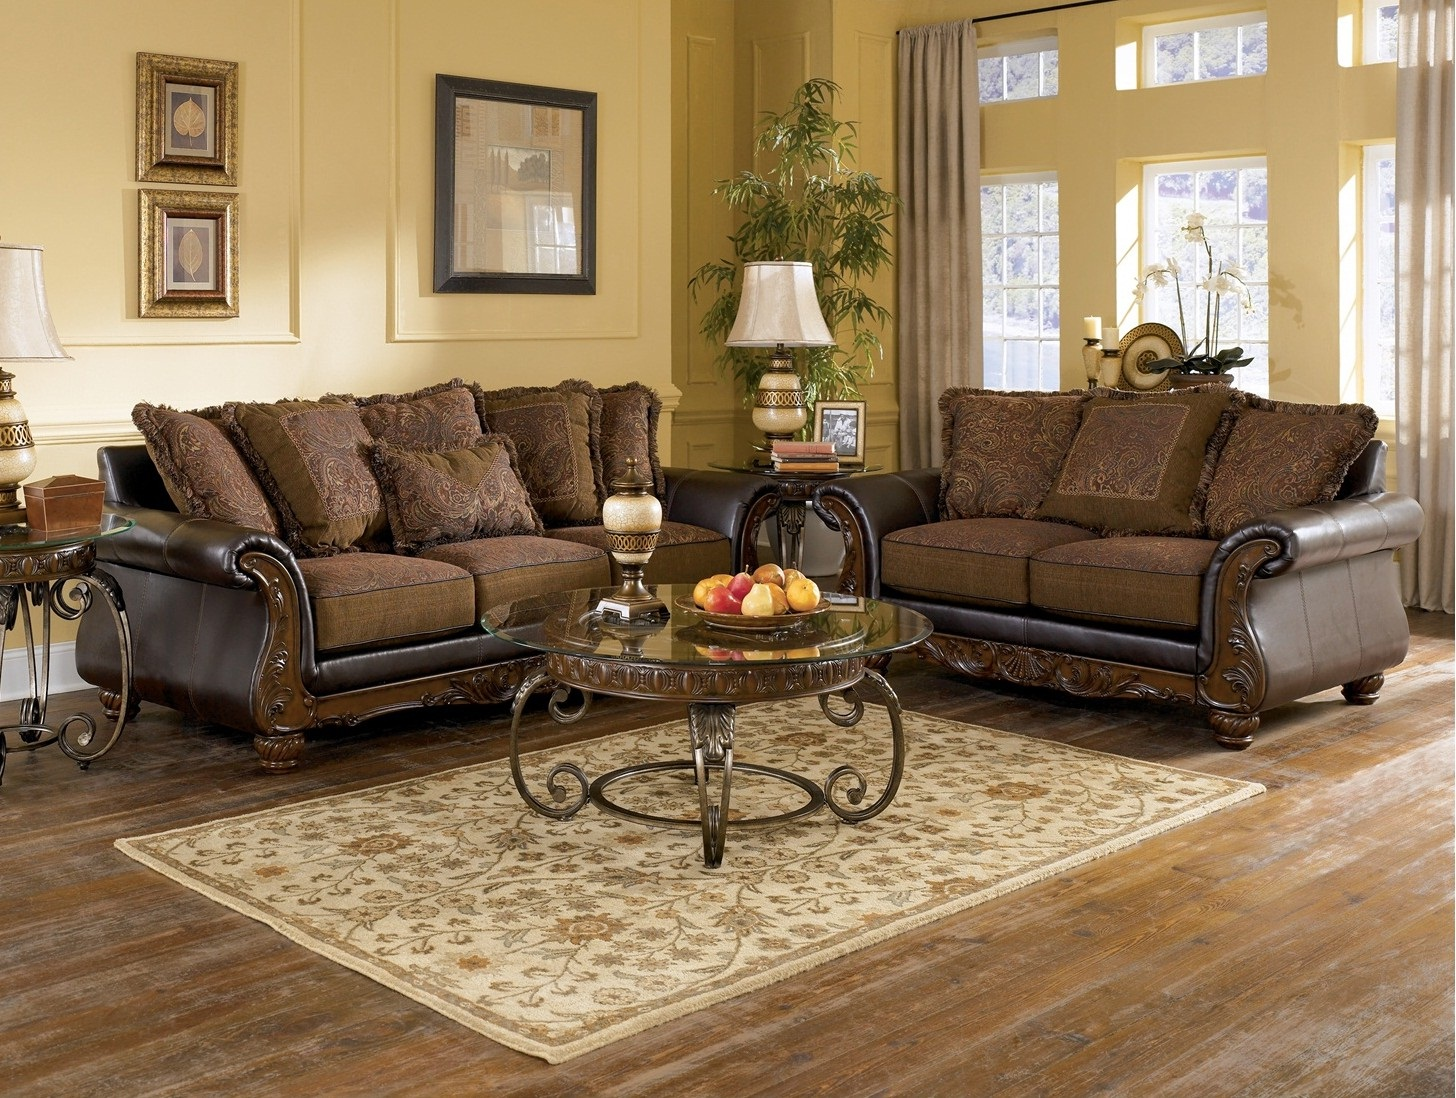 Cheap livingroom sets bloombety cheap living room for Cheap living room sets under 100